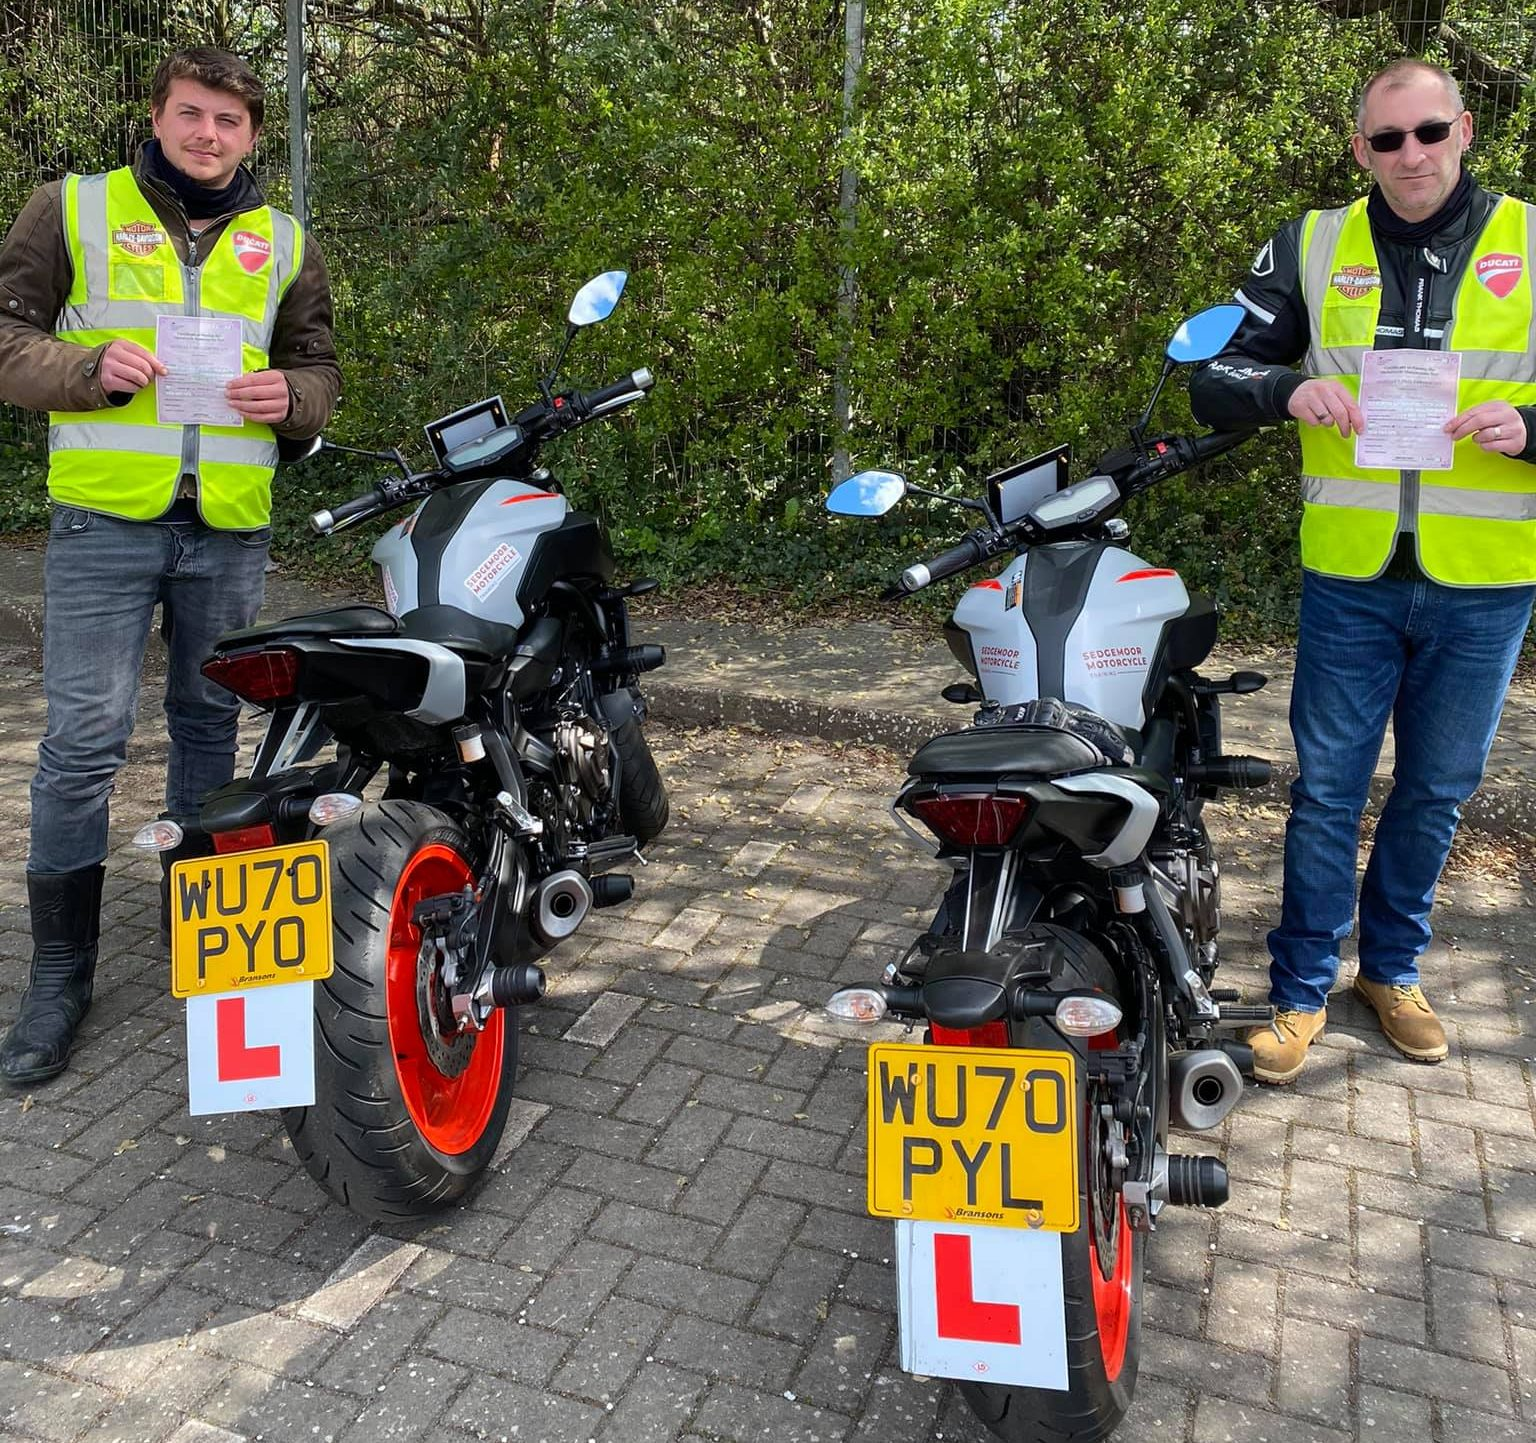 bridgwater motorcycle tests passed